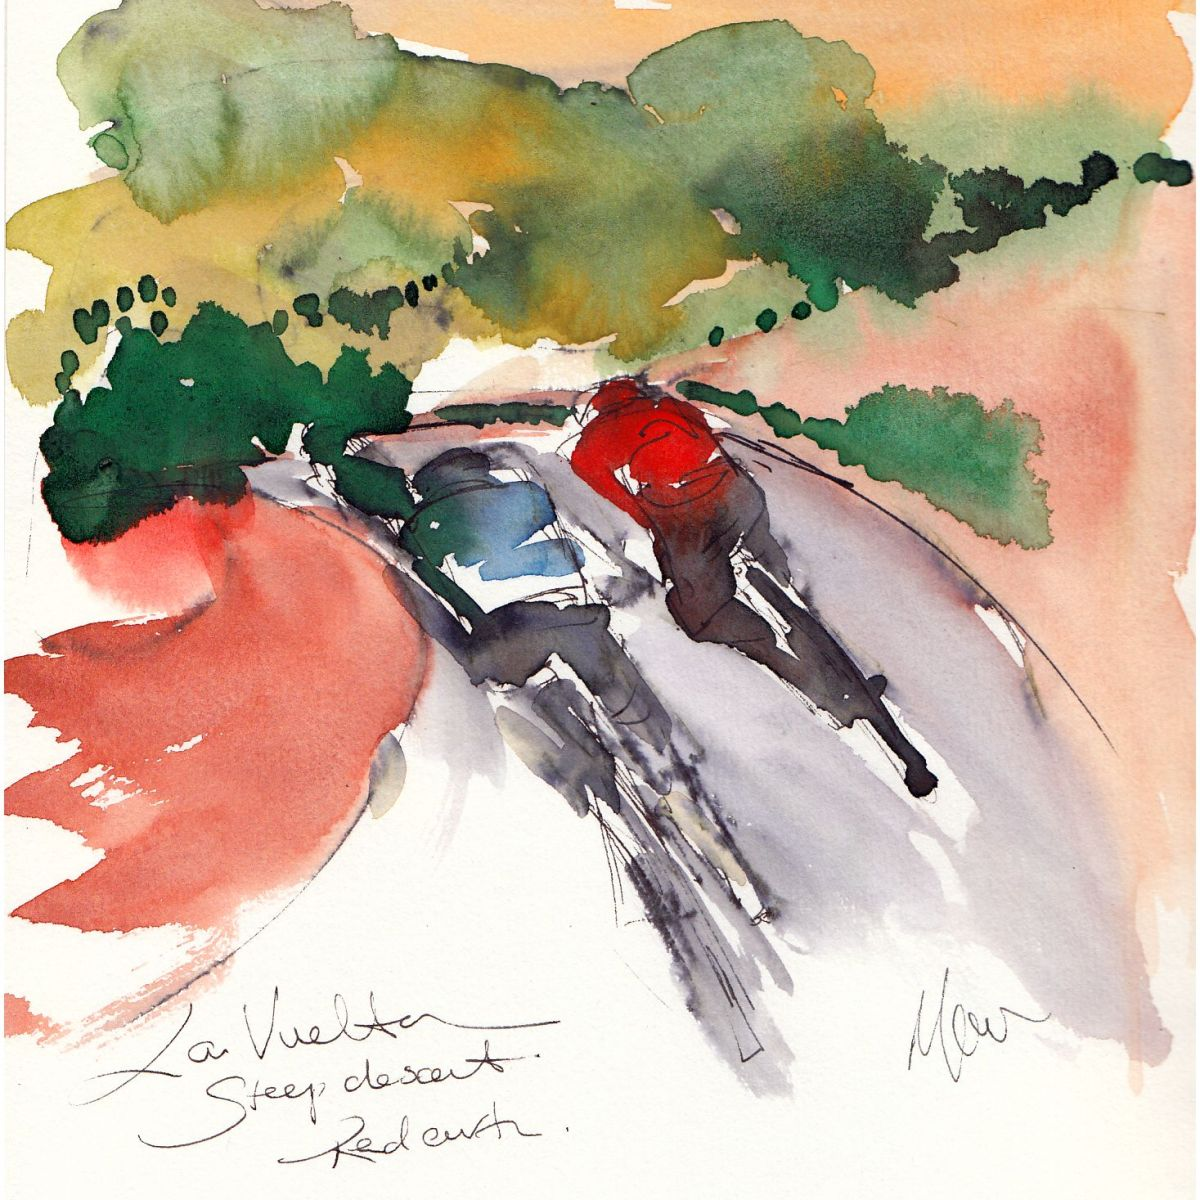 Cycling art, La Vuelta